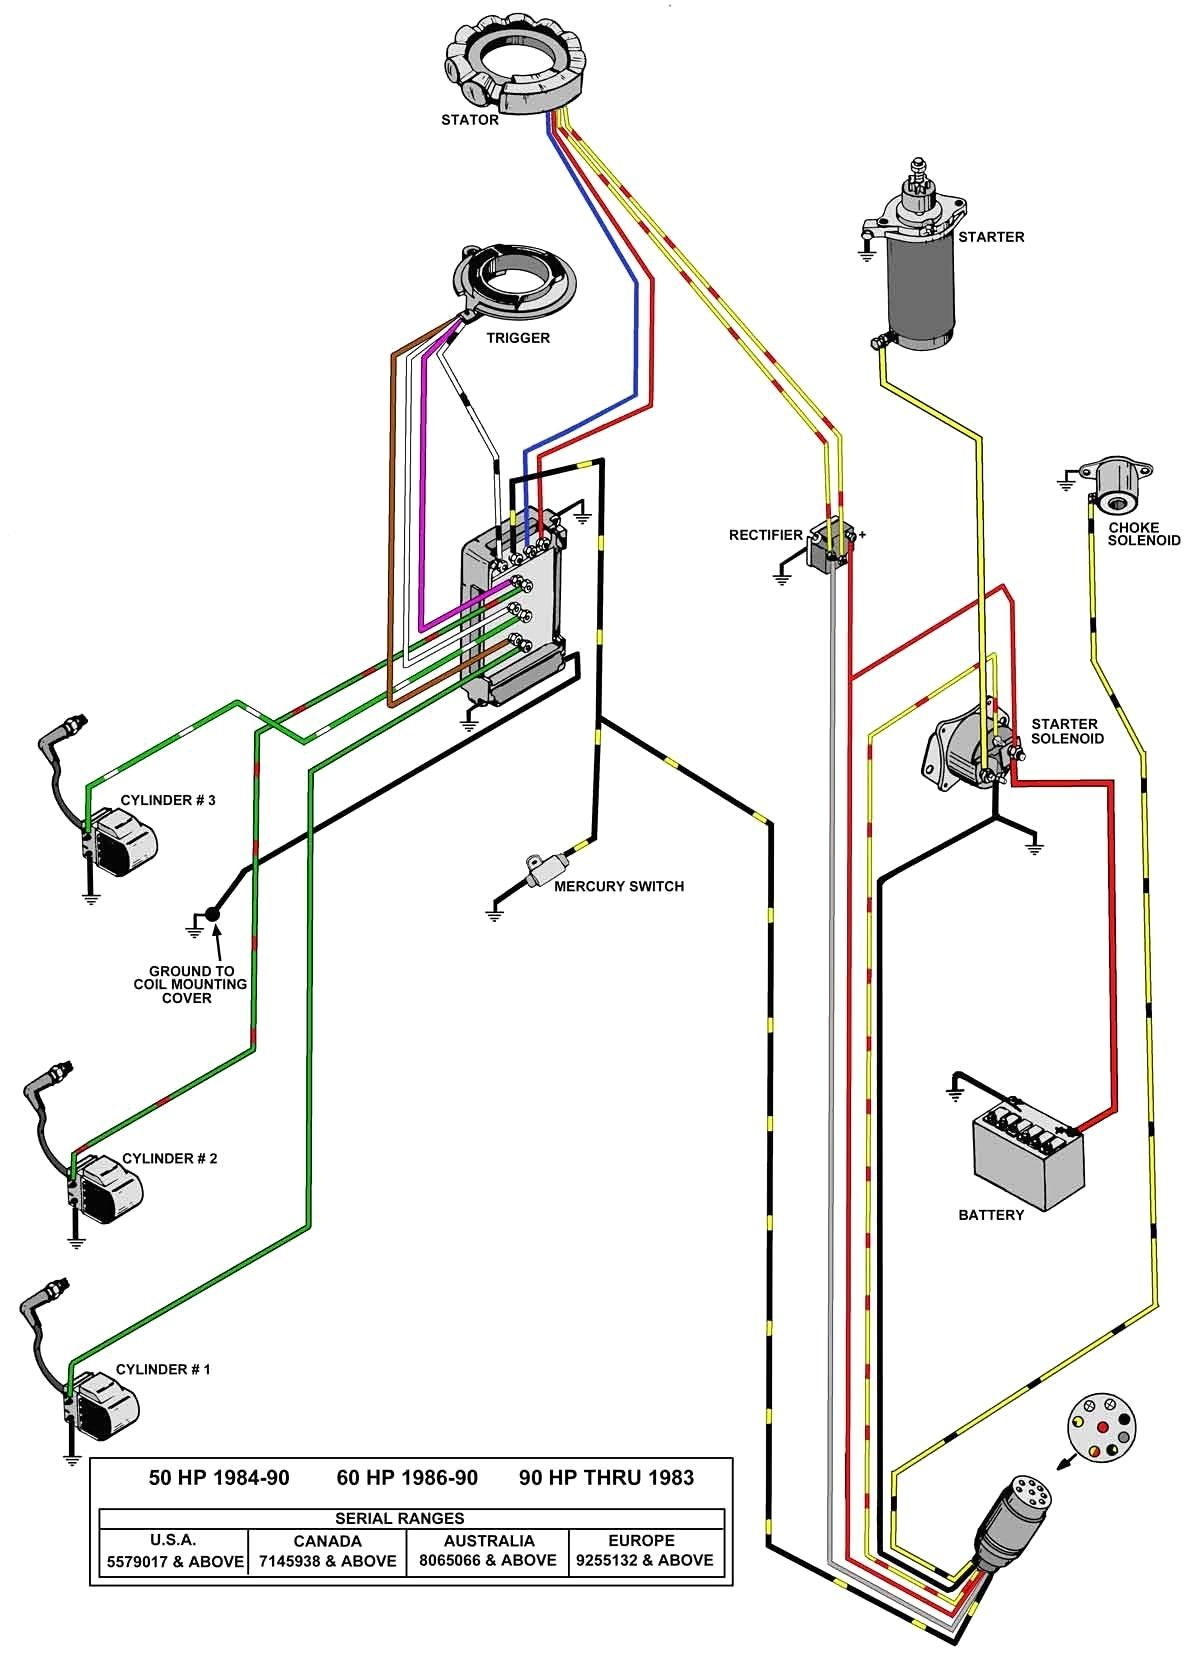 Amazing Boat Engine Switch Wiring Diagram Wiring Diagram Data Schema Wiring Cloud Uslyletkolfr09Org